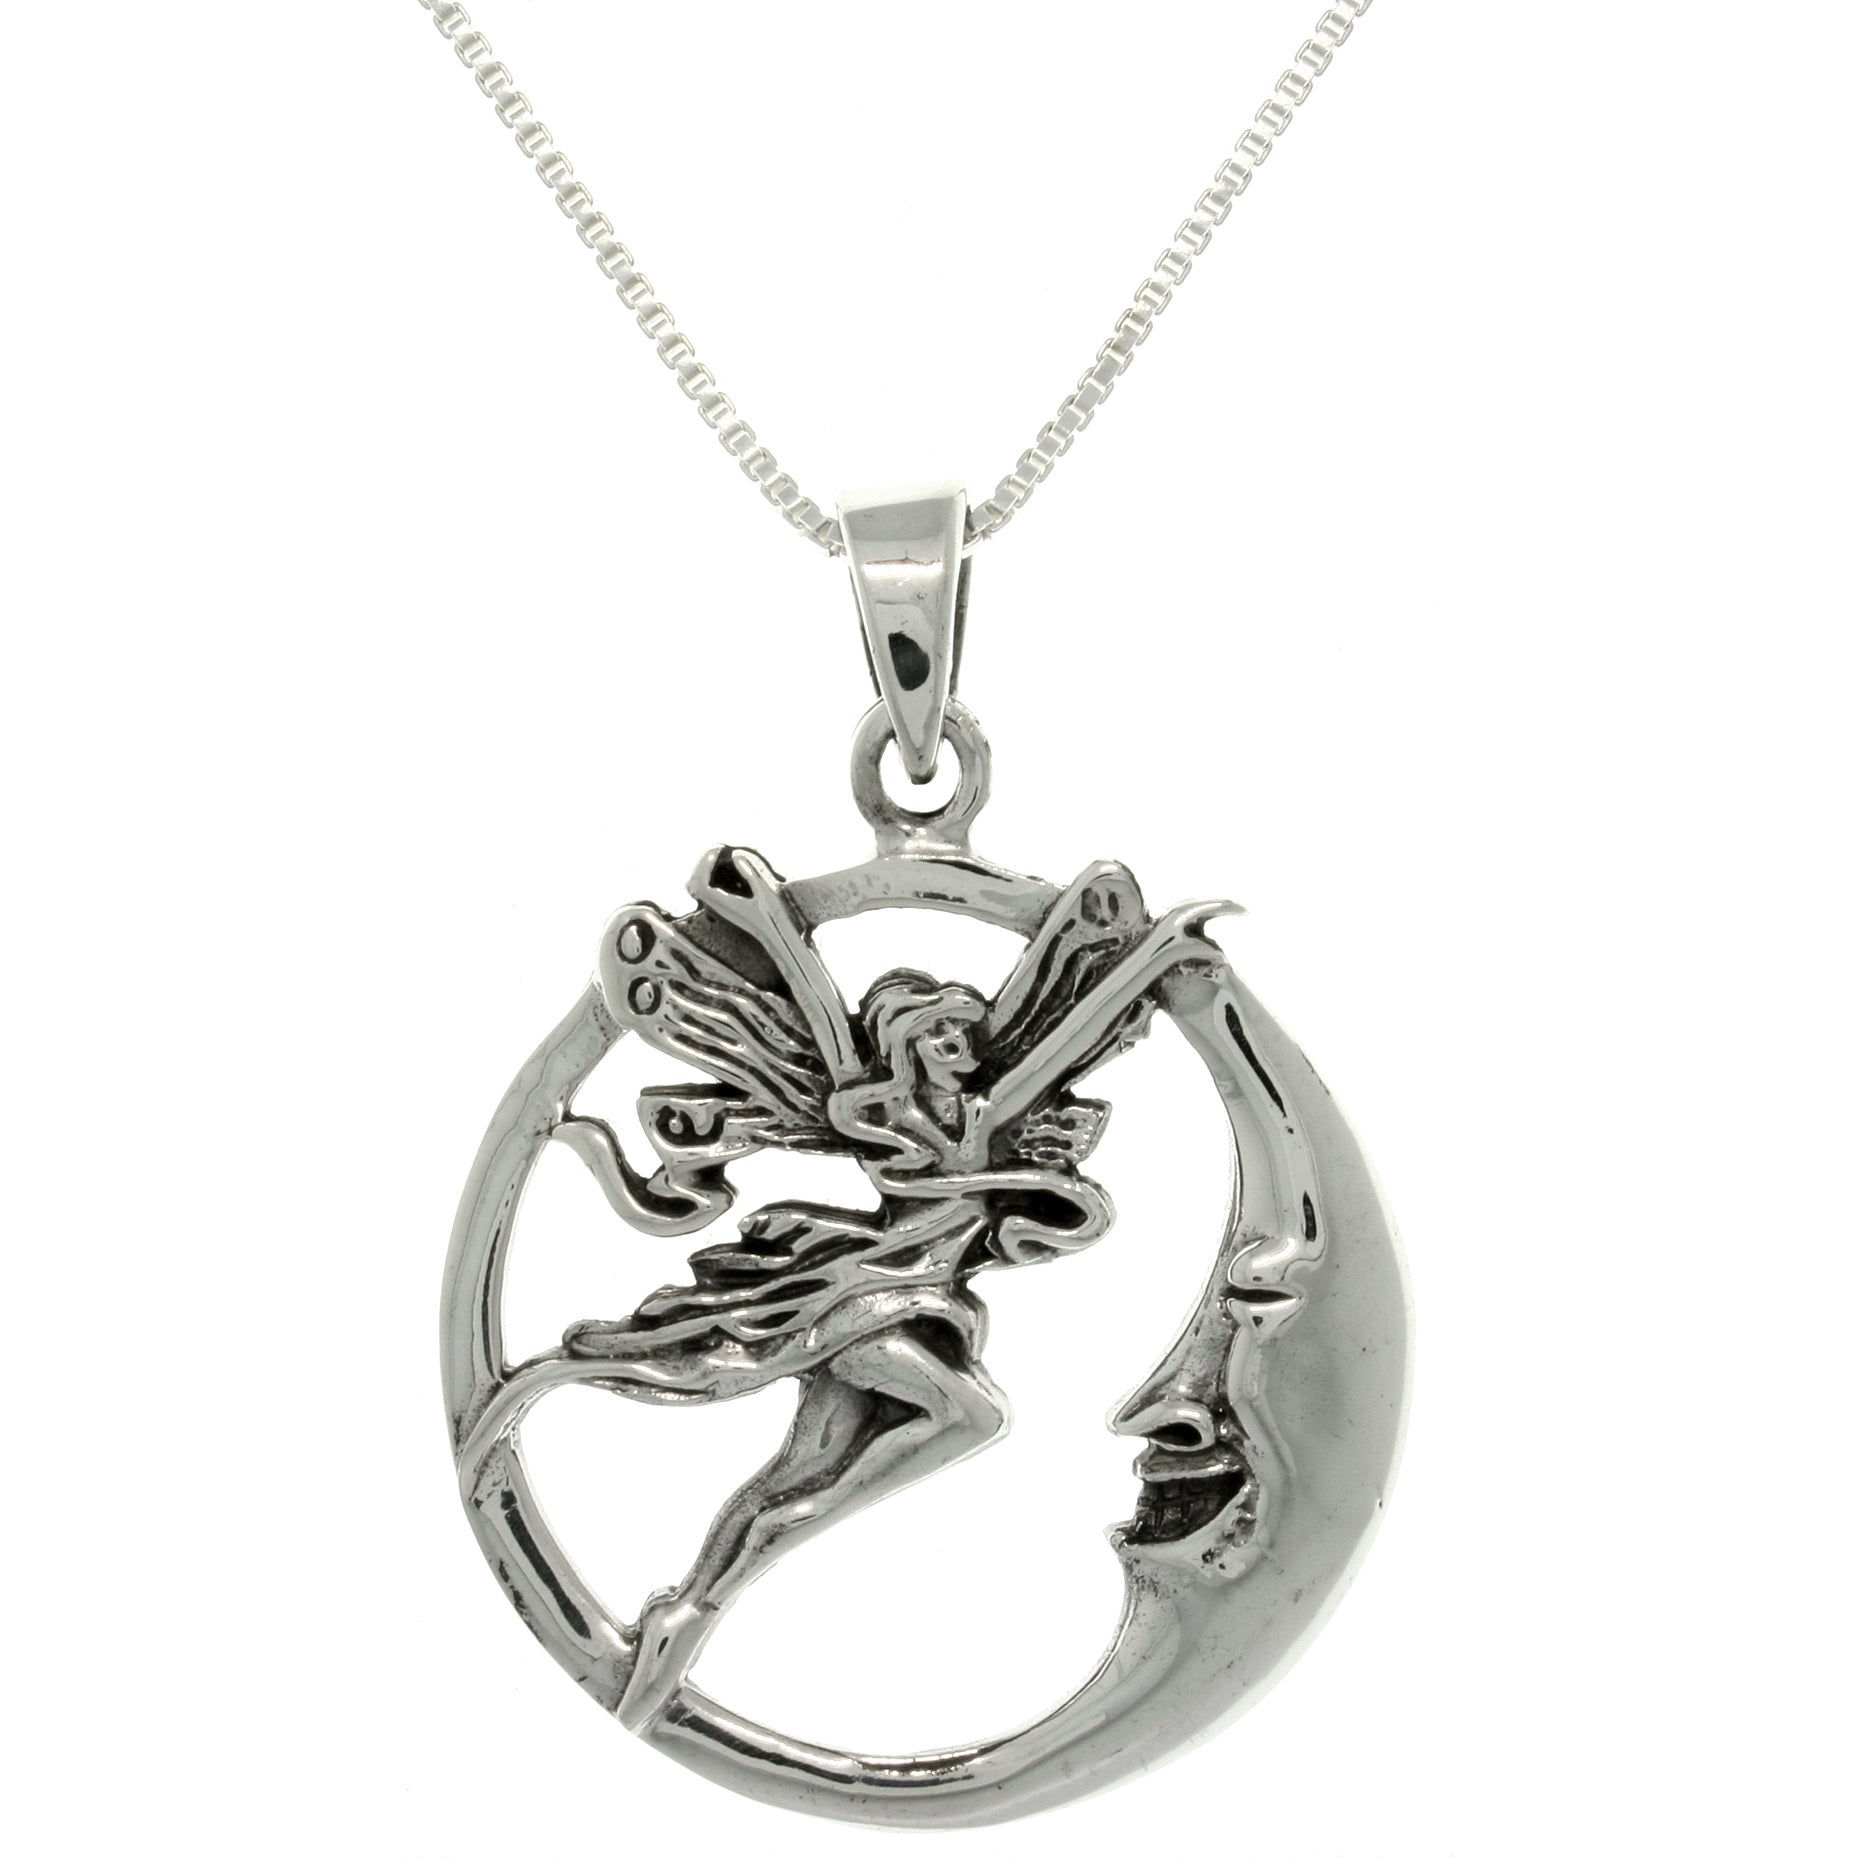 by fairy sterling pendant product silver exclusivity necklace designexclusivity